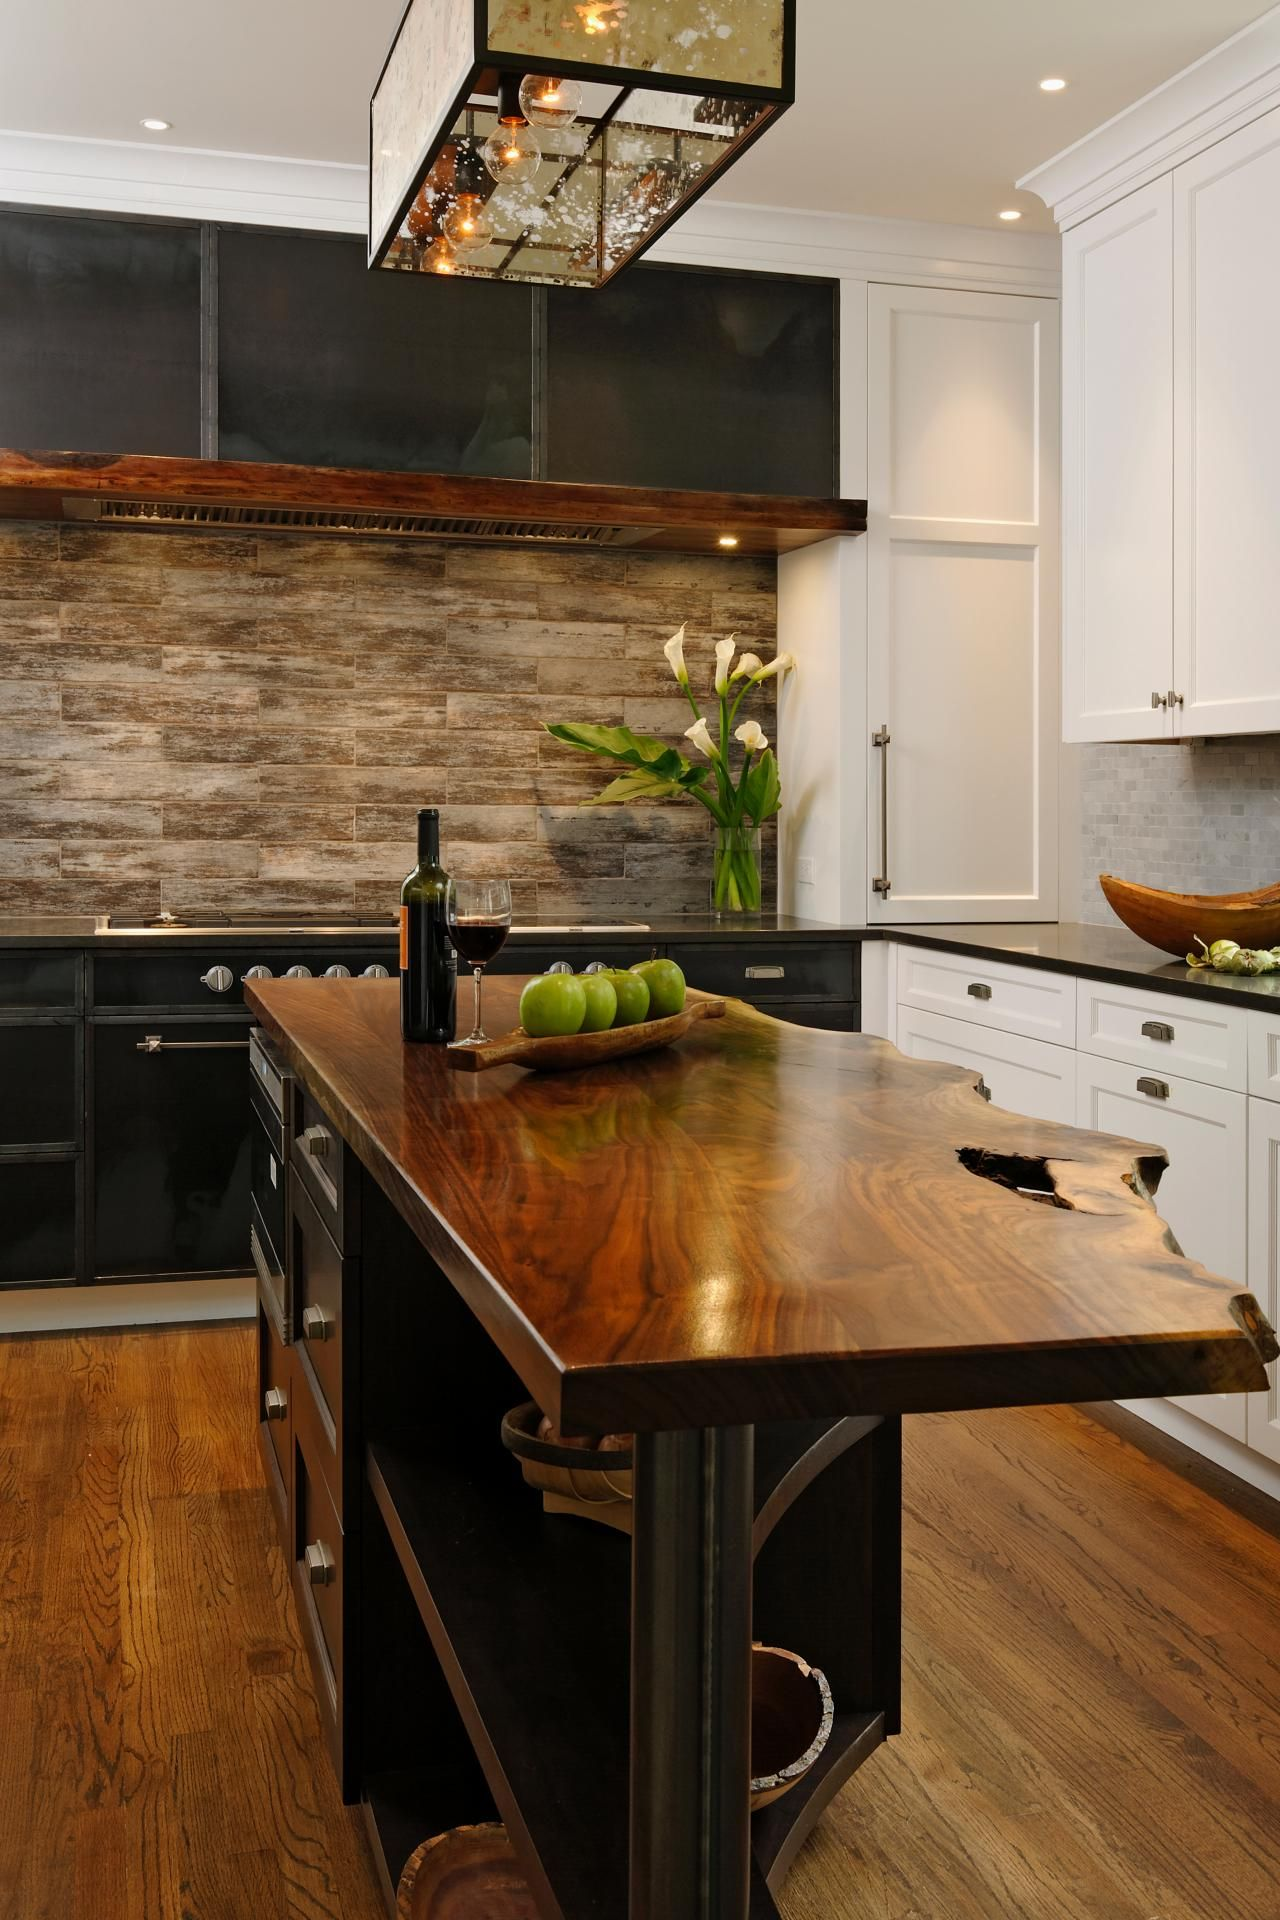 Rustic Kitchen Island Favorite Trends To Try In 2015 Countertops Islands And Design